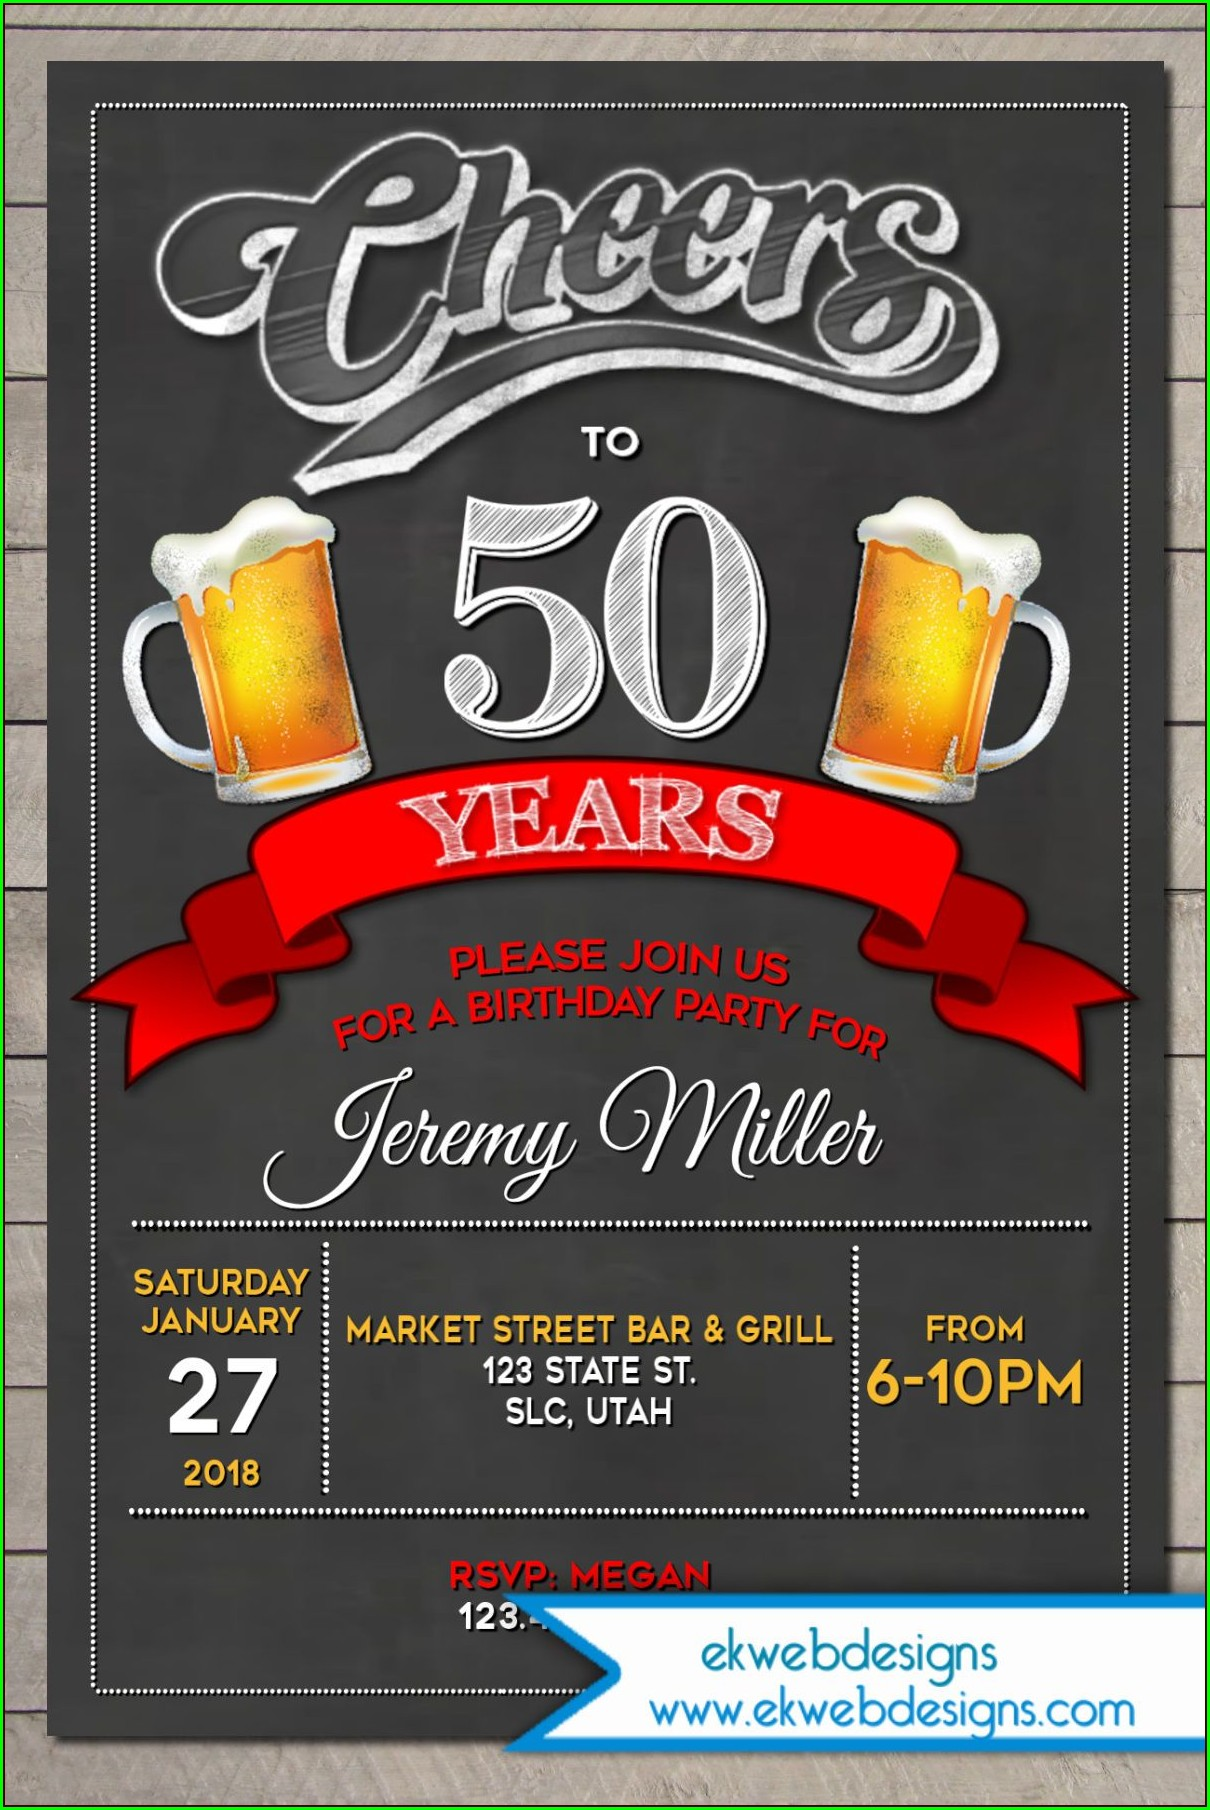 Cheers And Beers Invitation